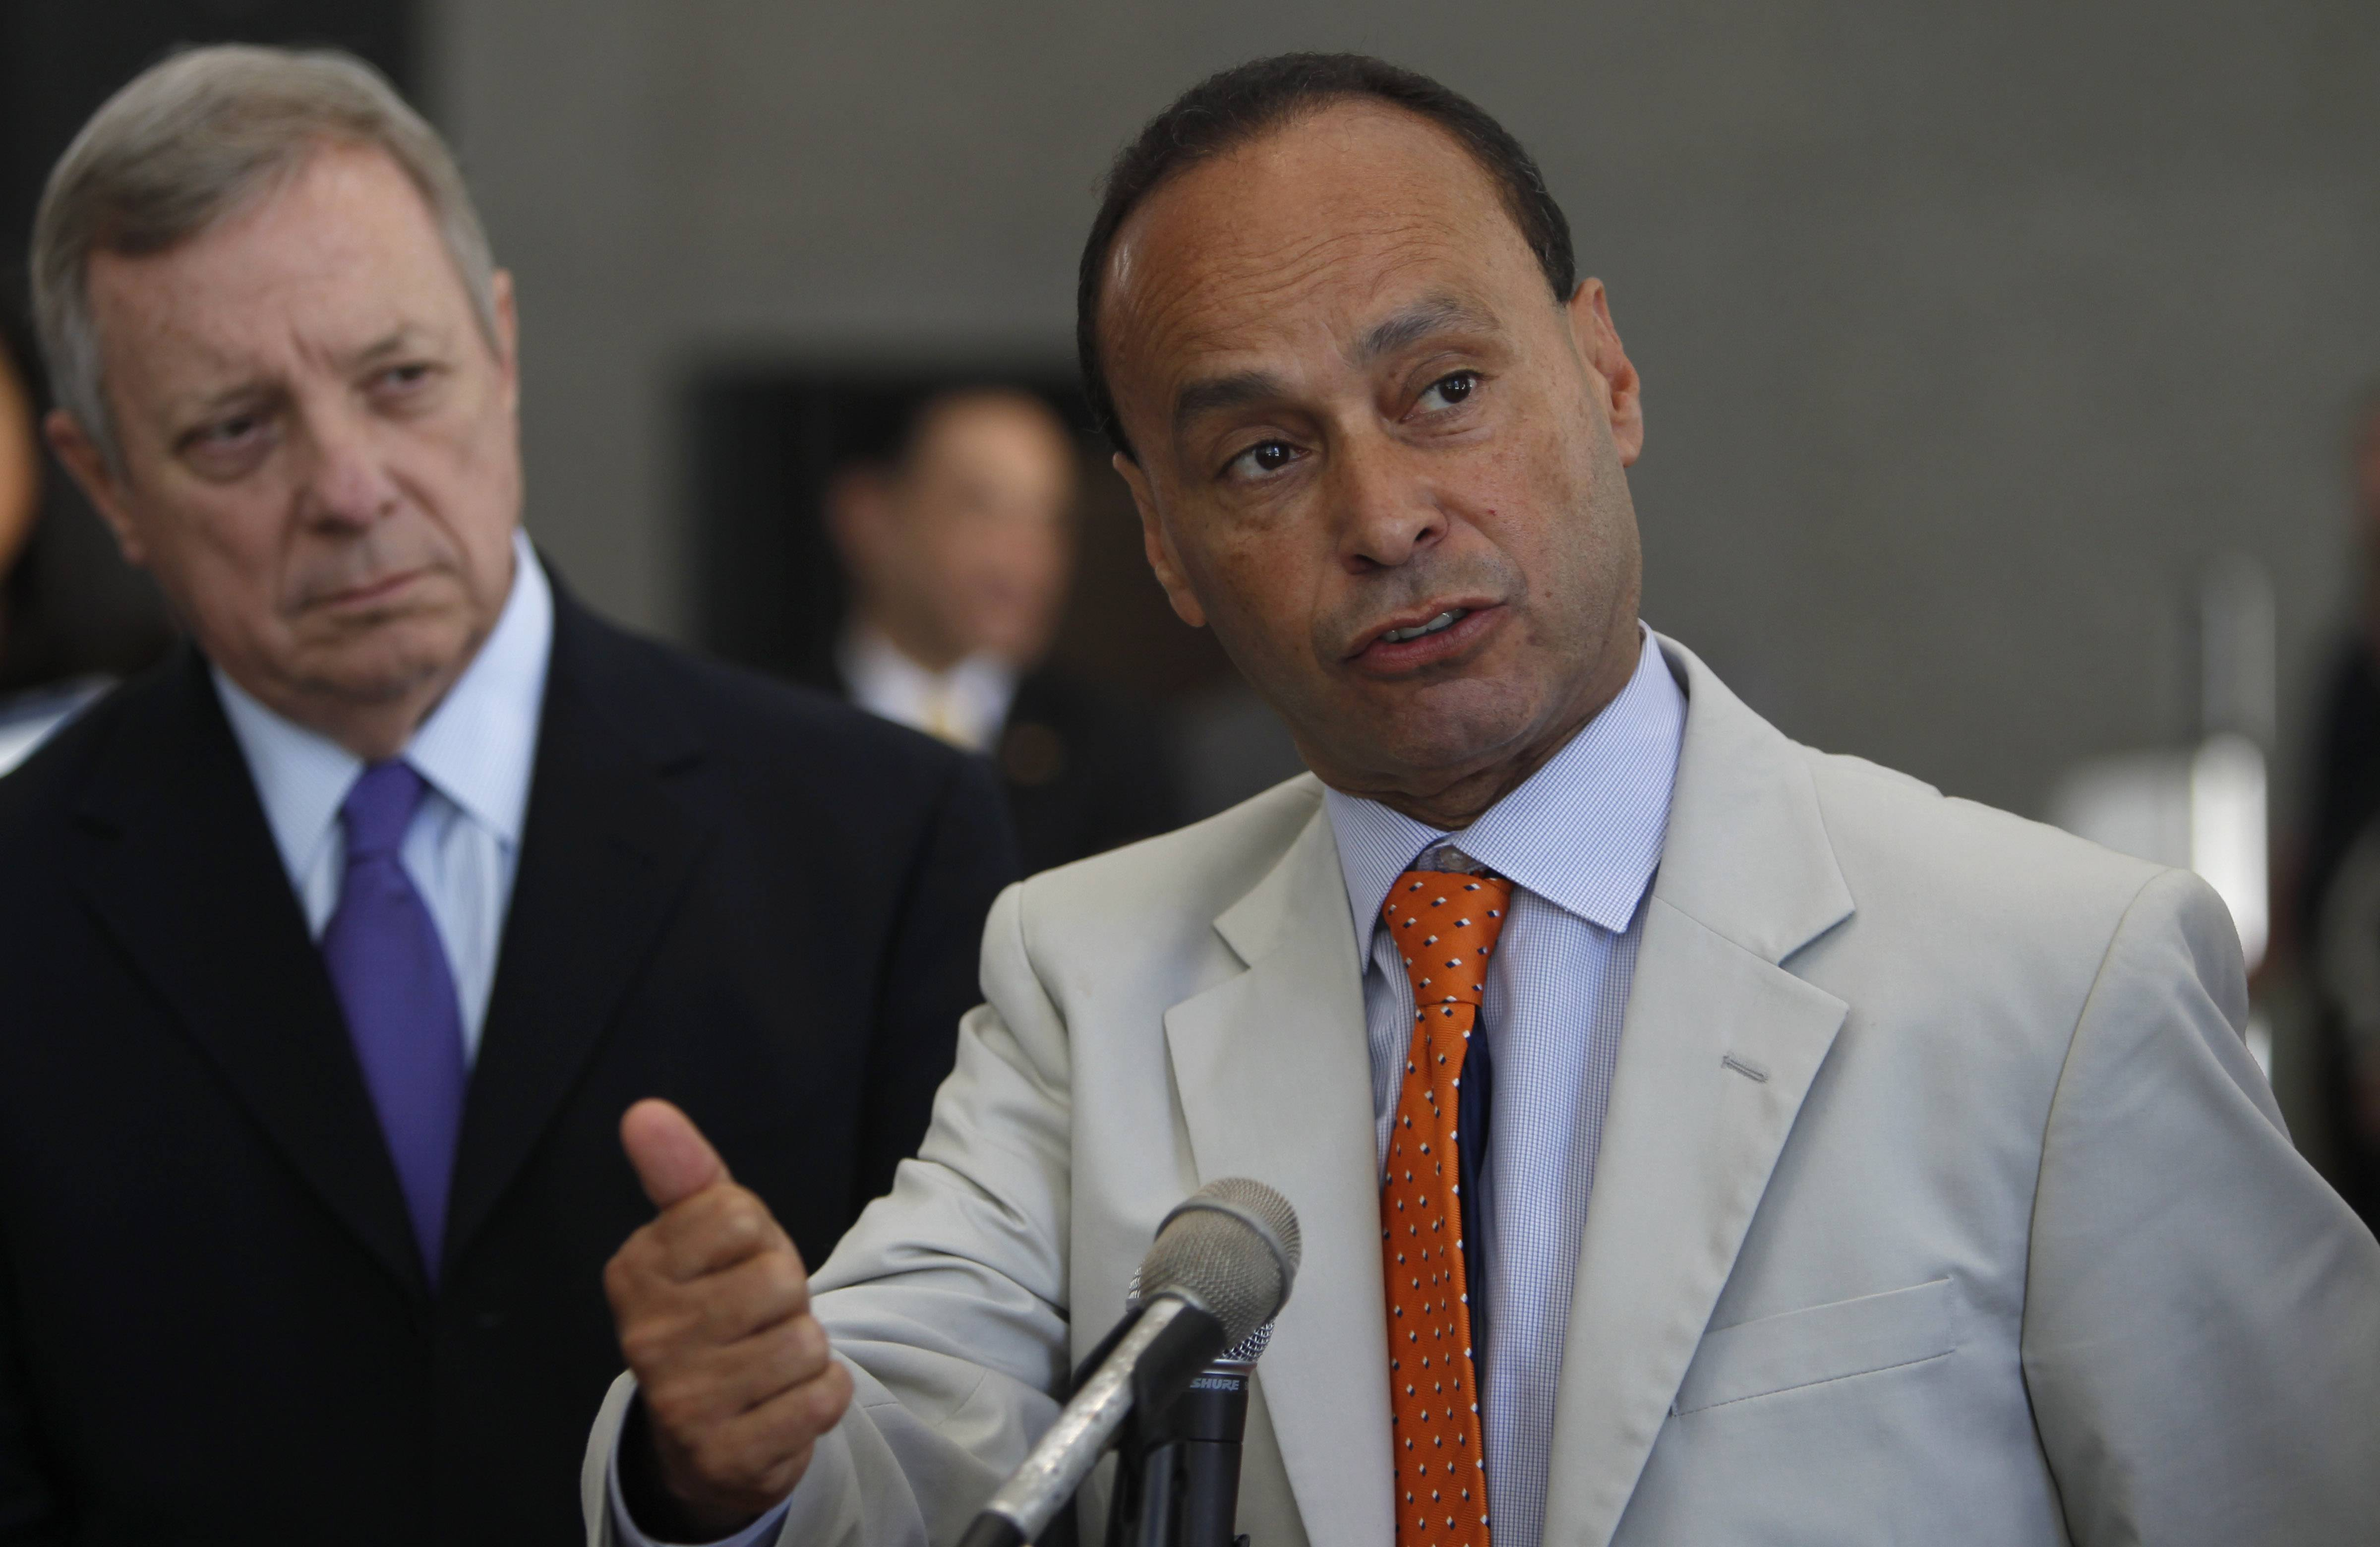 Rep. Luis Gutierrez, a Chicago Democrat, accompanied Homeland Security chief Jeh Johnson on his tour of the Broadview Immigration Detention Center.